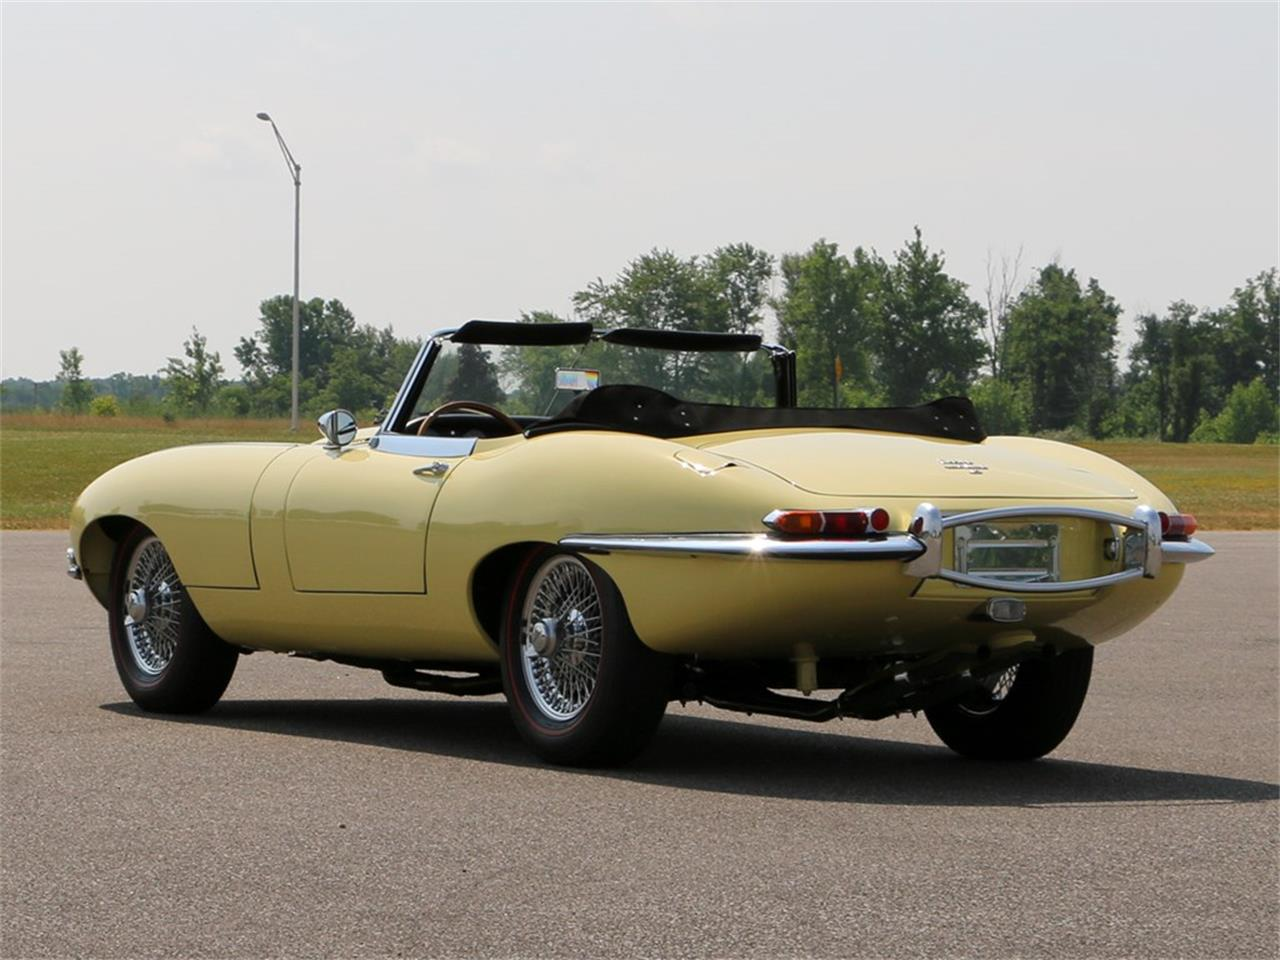 Large Picture of Classic 1967 Jaguar E-Type located in Auburn Indiana Auction Vehicle Offered by RM Sotheby's - PY3P